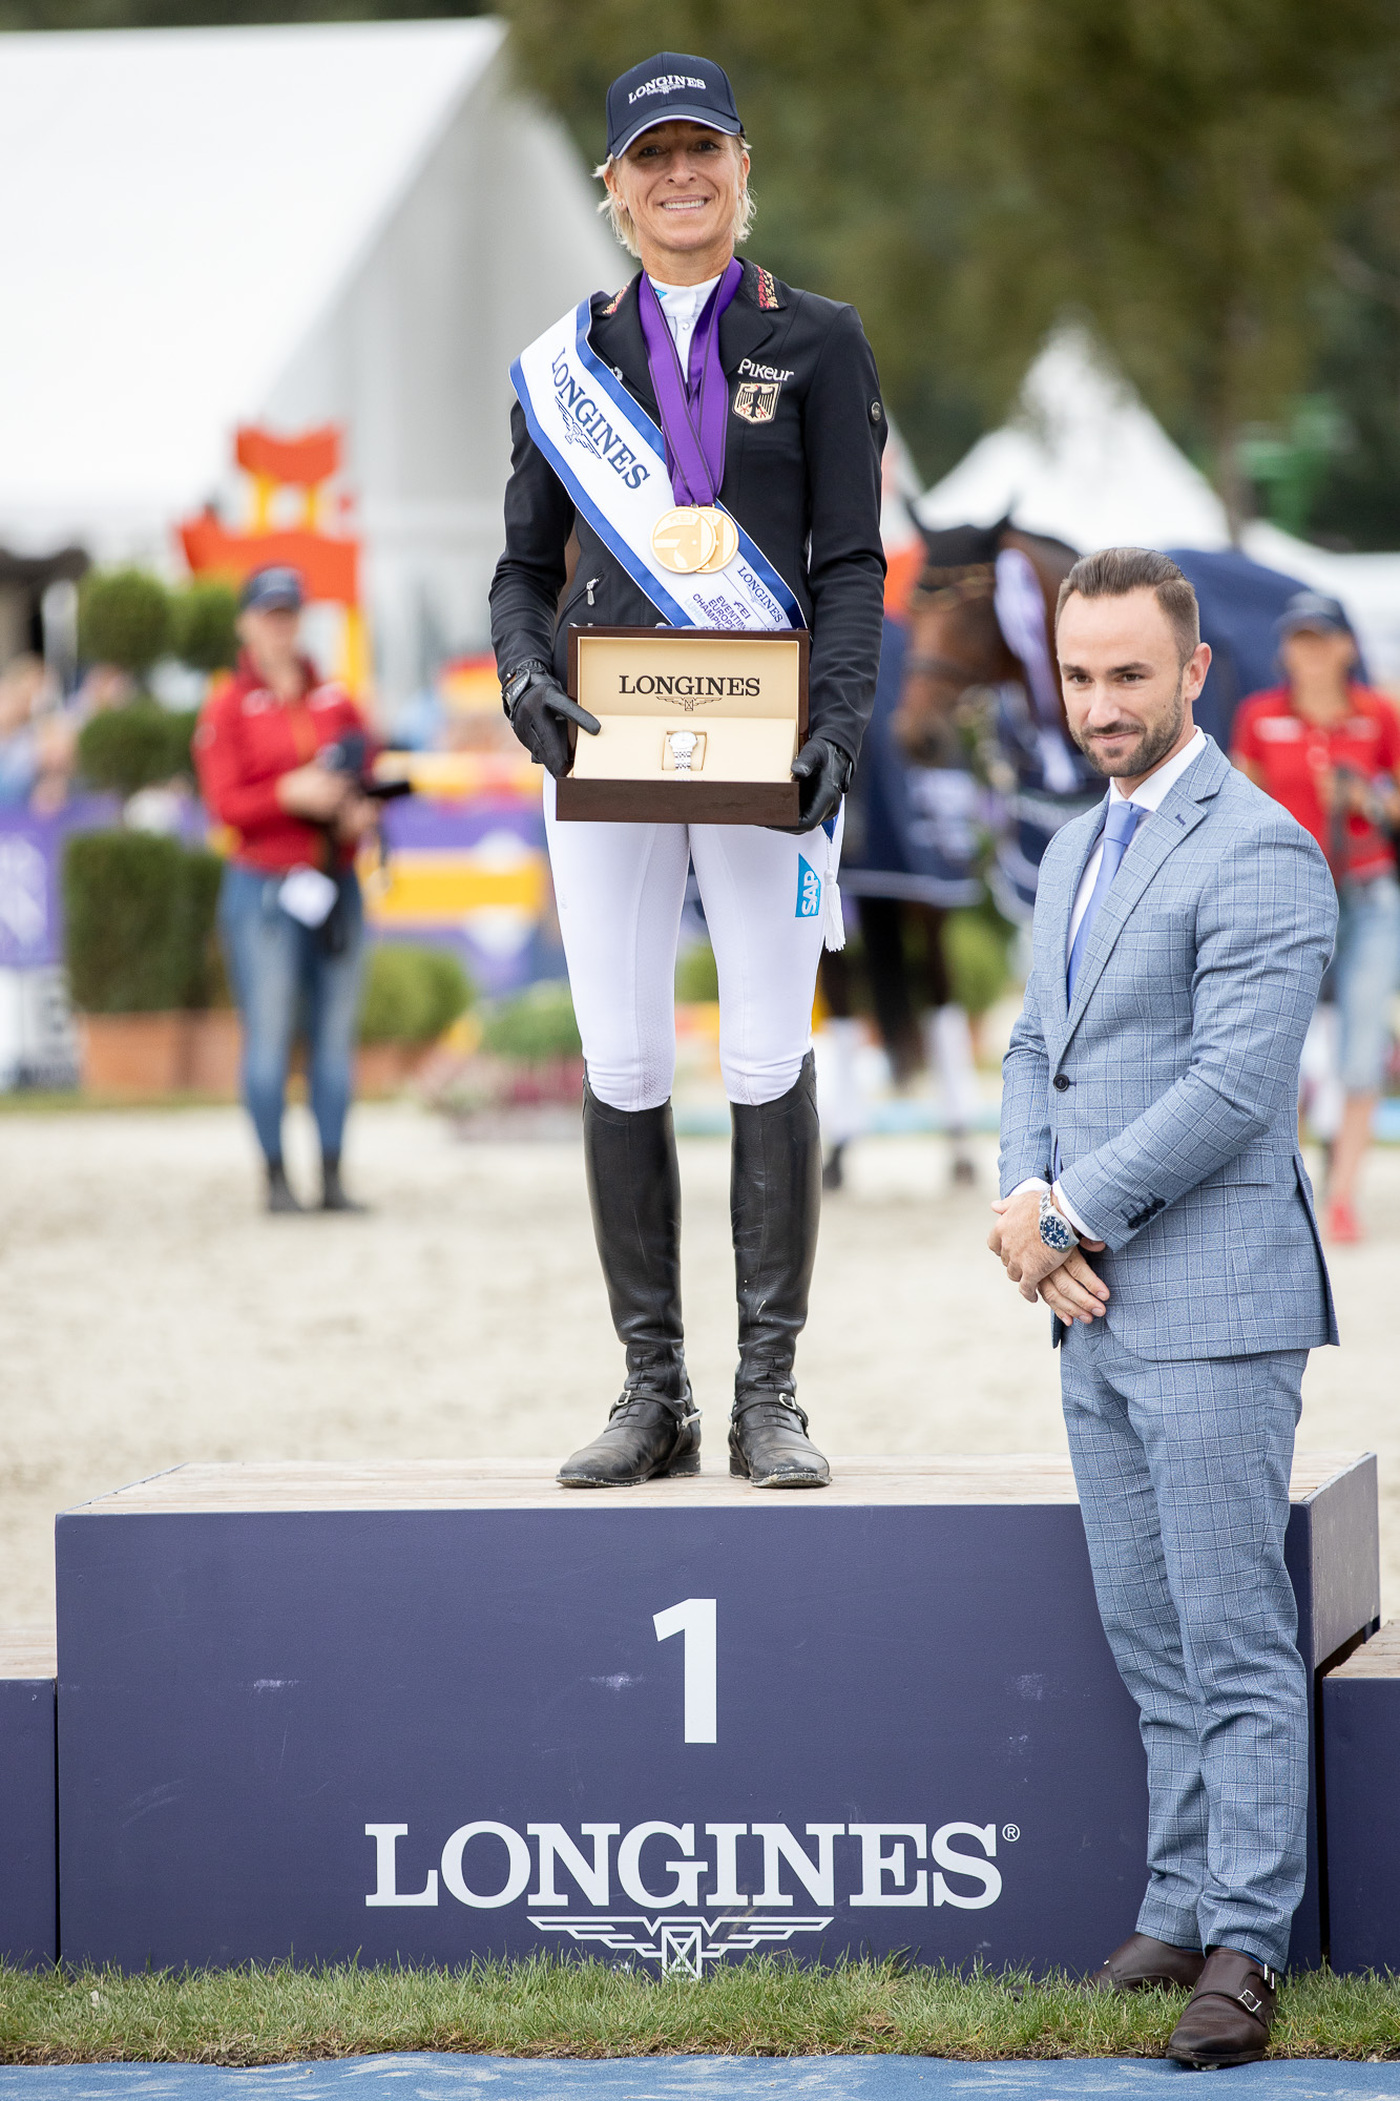 Longines Eventing Event: Team Germany claimed the 2019 Longines FEI Eventing European Championships crown in Luhmühlen 6